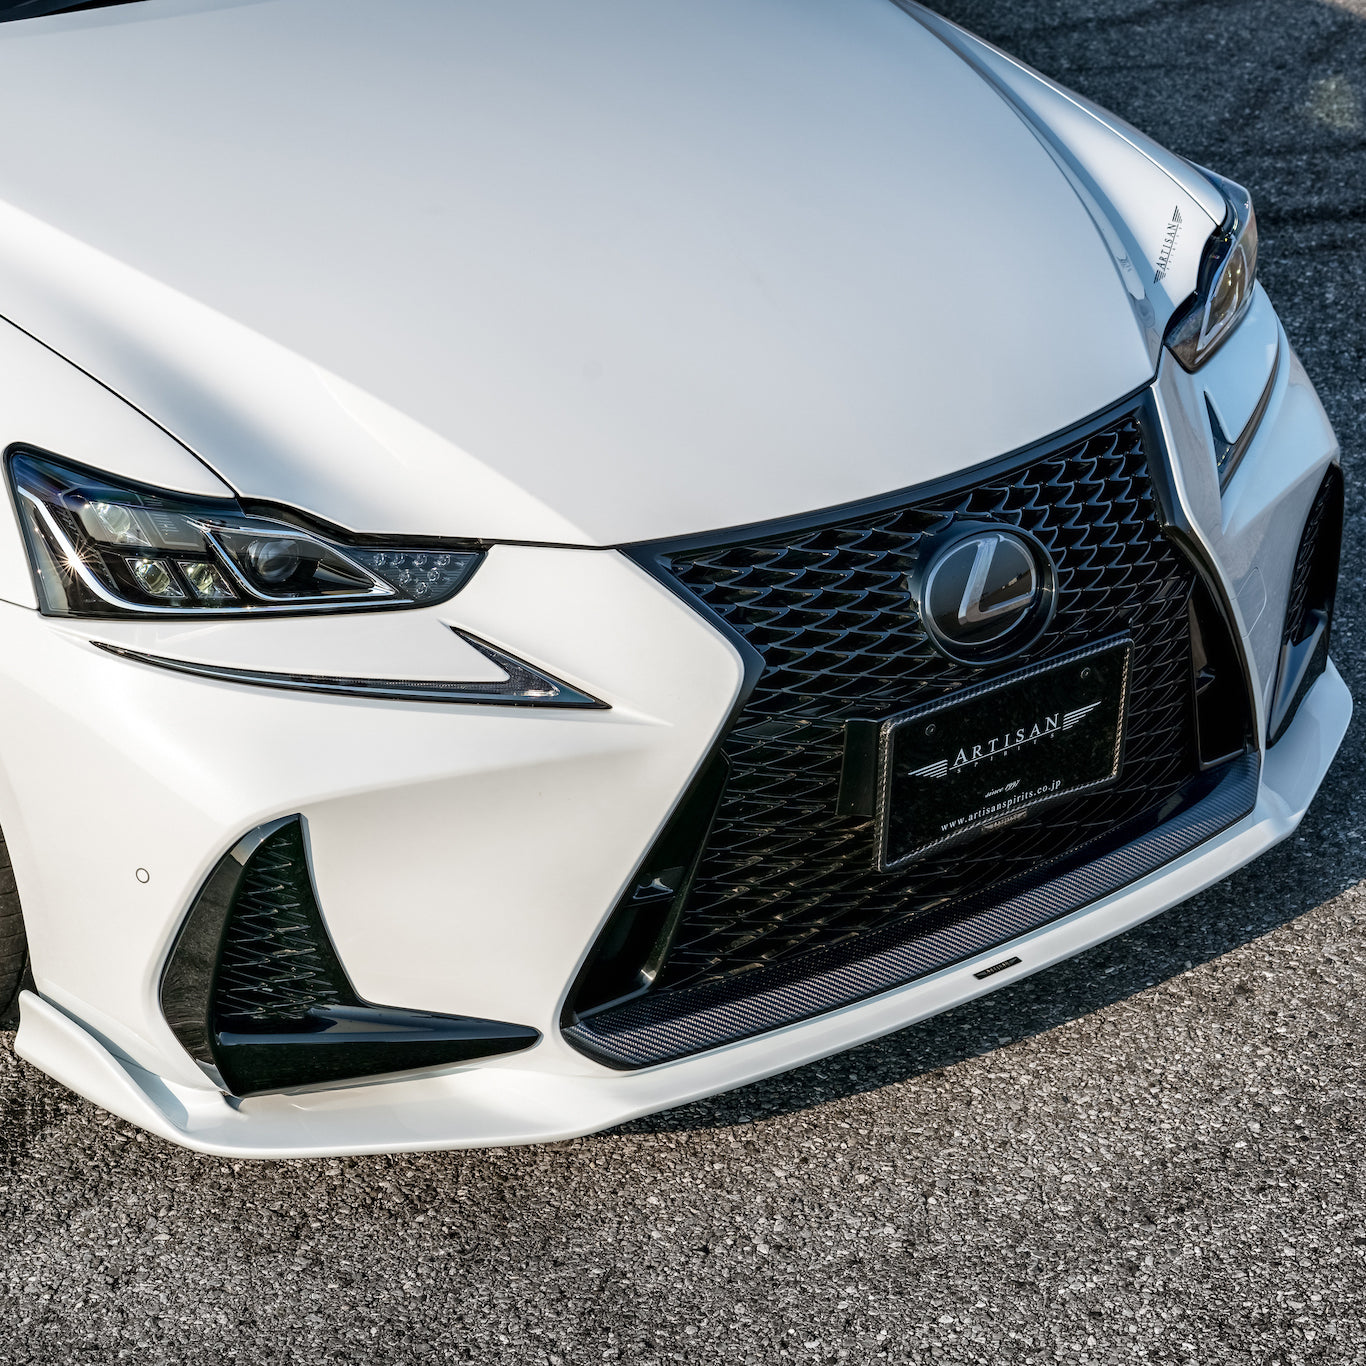 Artisan Spirits Lexus IS F Sport Front Grille Garnish